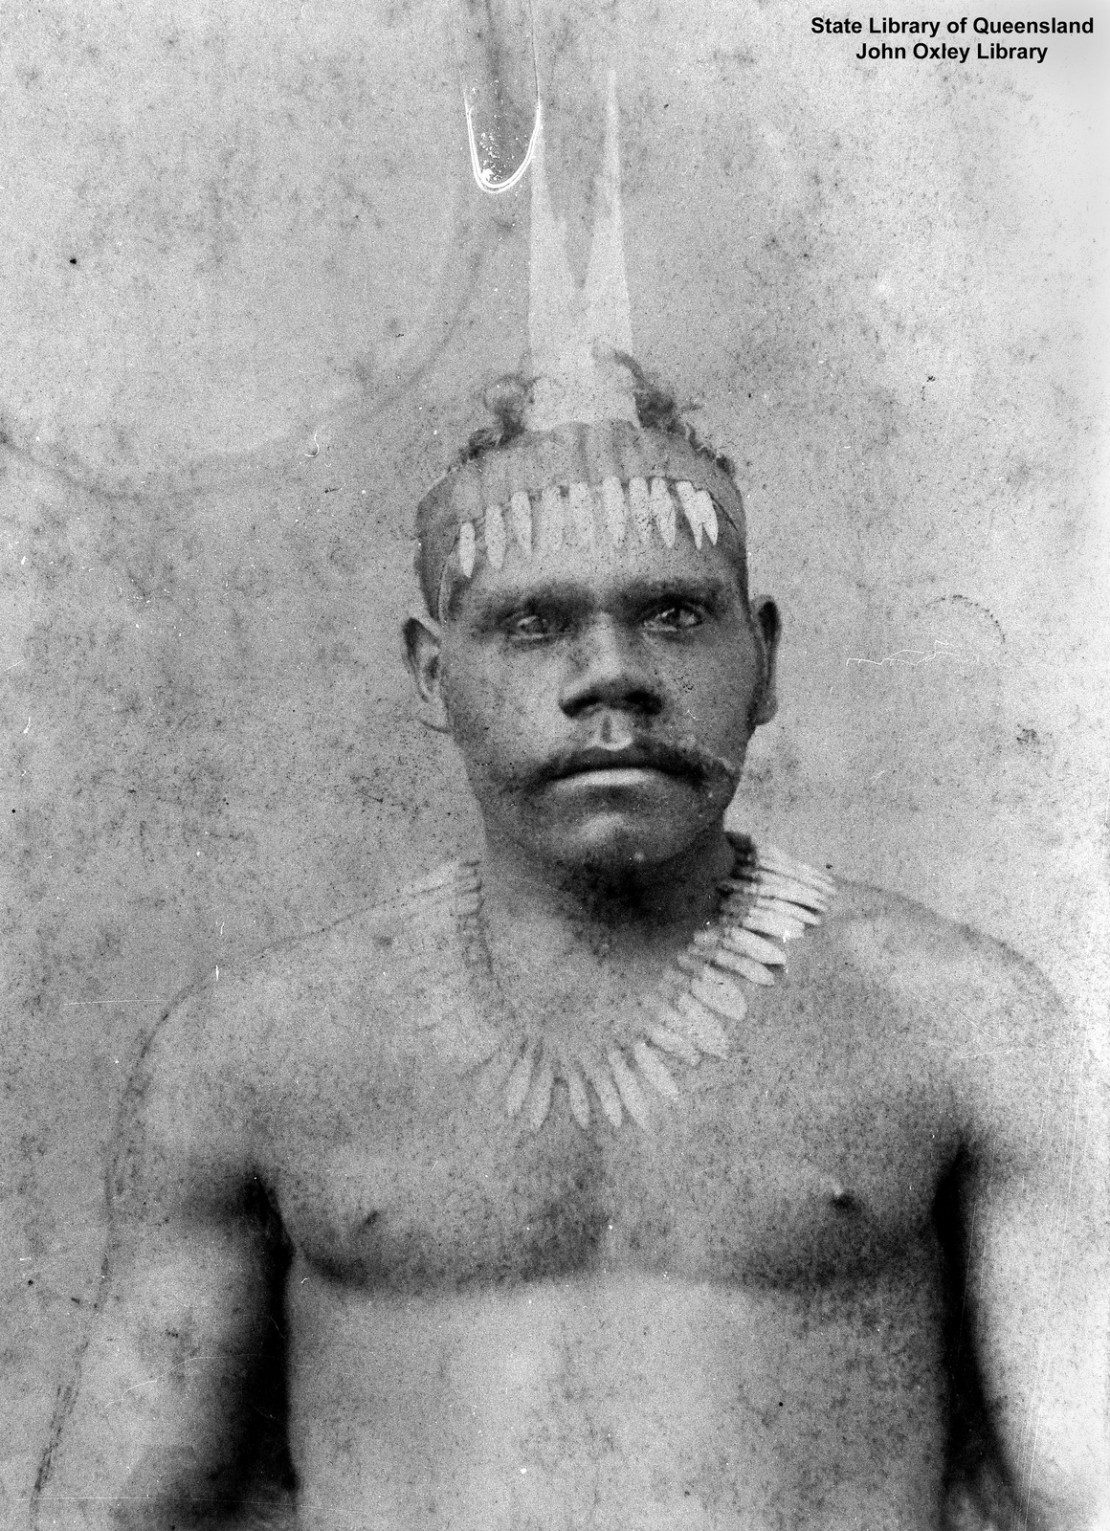 Wondunna wearing headdress decorated with kangaroo teeth Fraser Island ca 1900